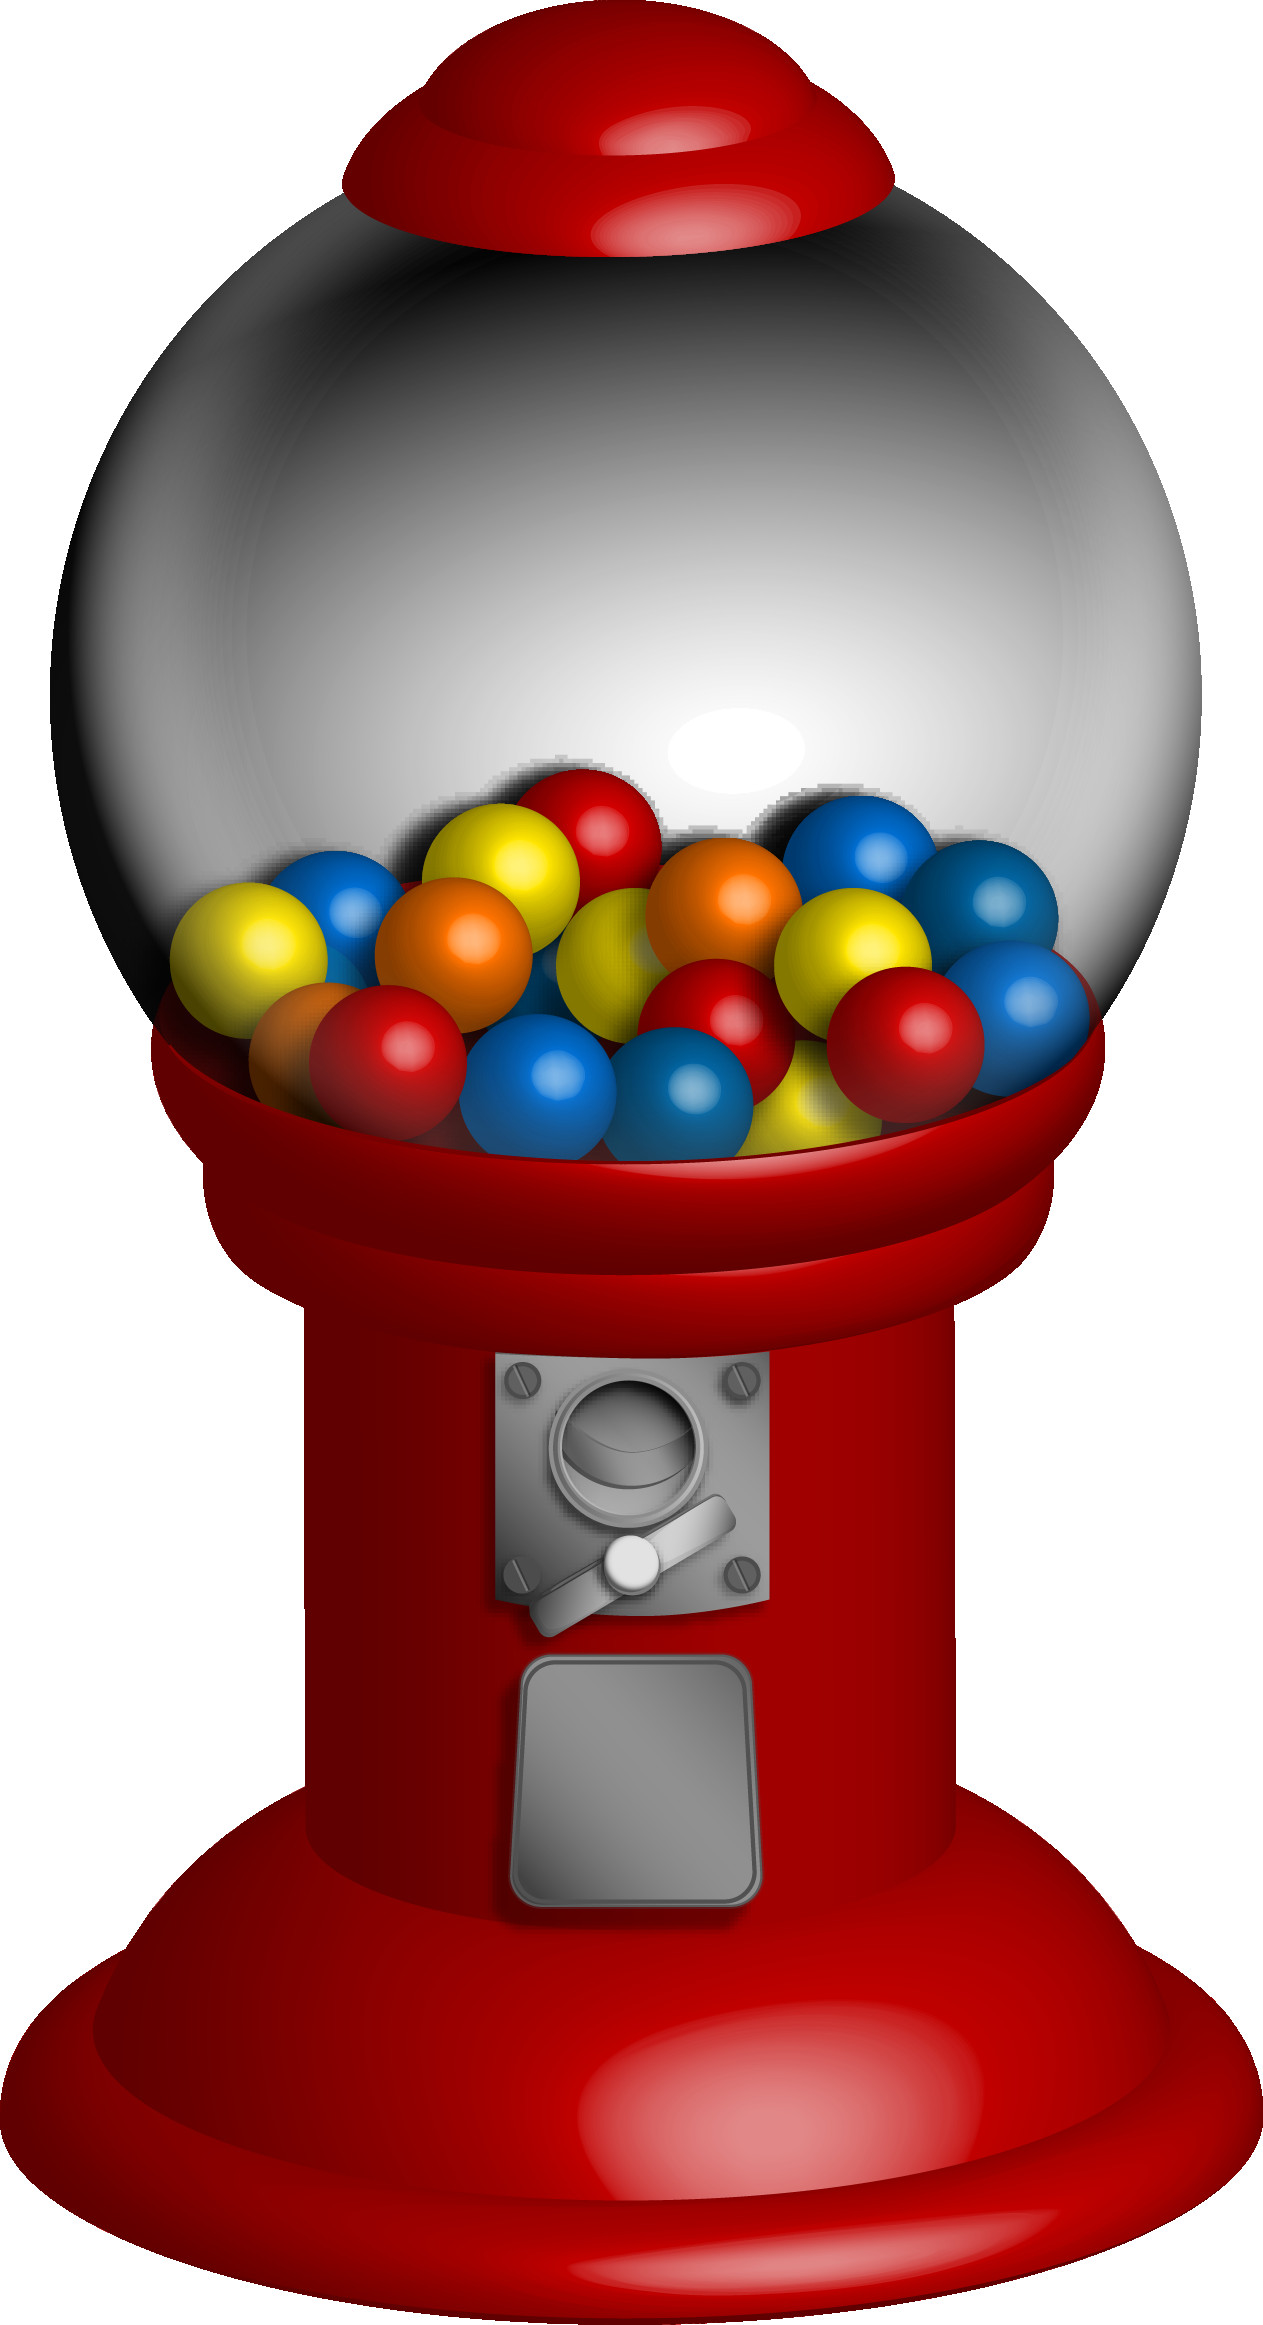 1263x2325 Gumball Clipart Ball 7 On Machine Clip Art For Alluring